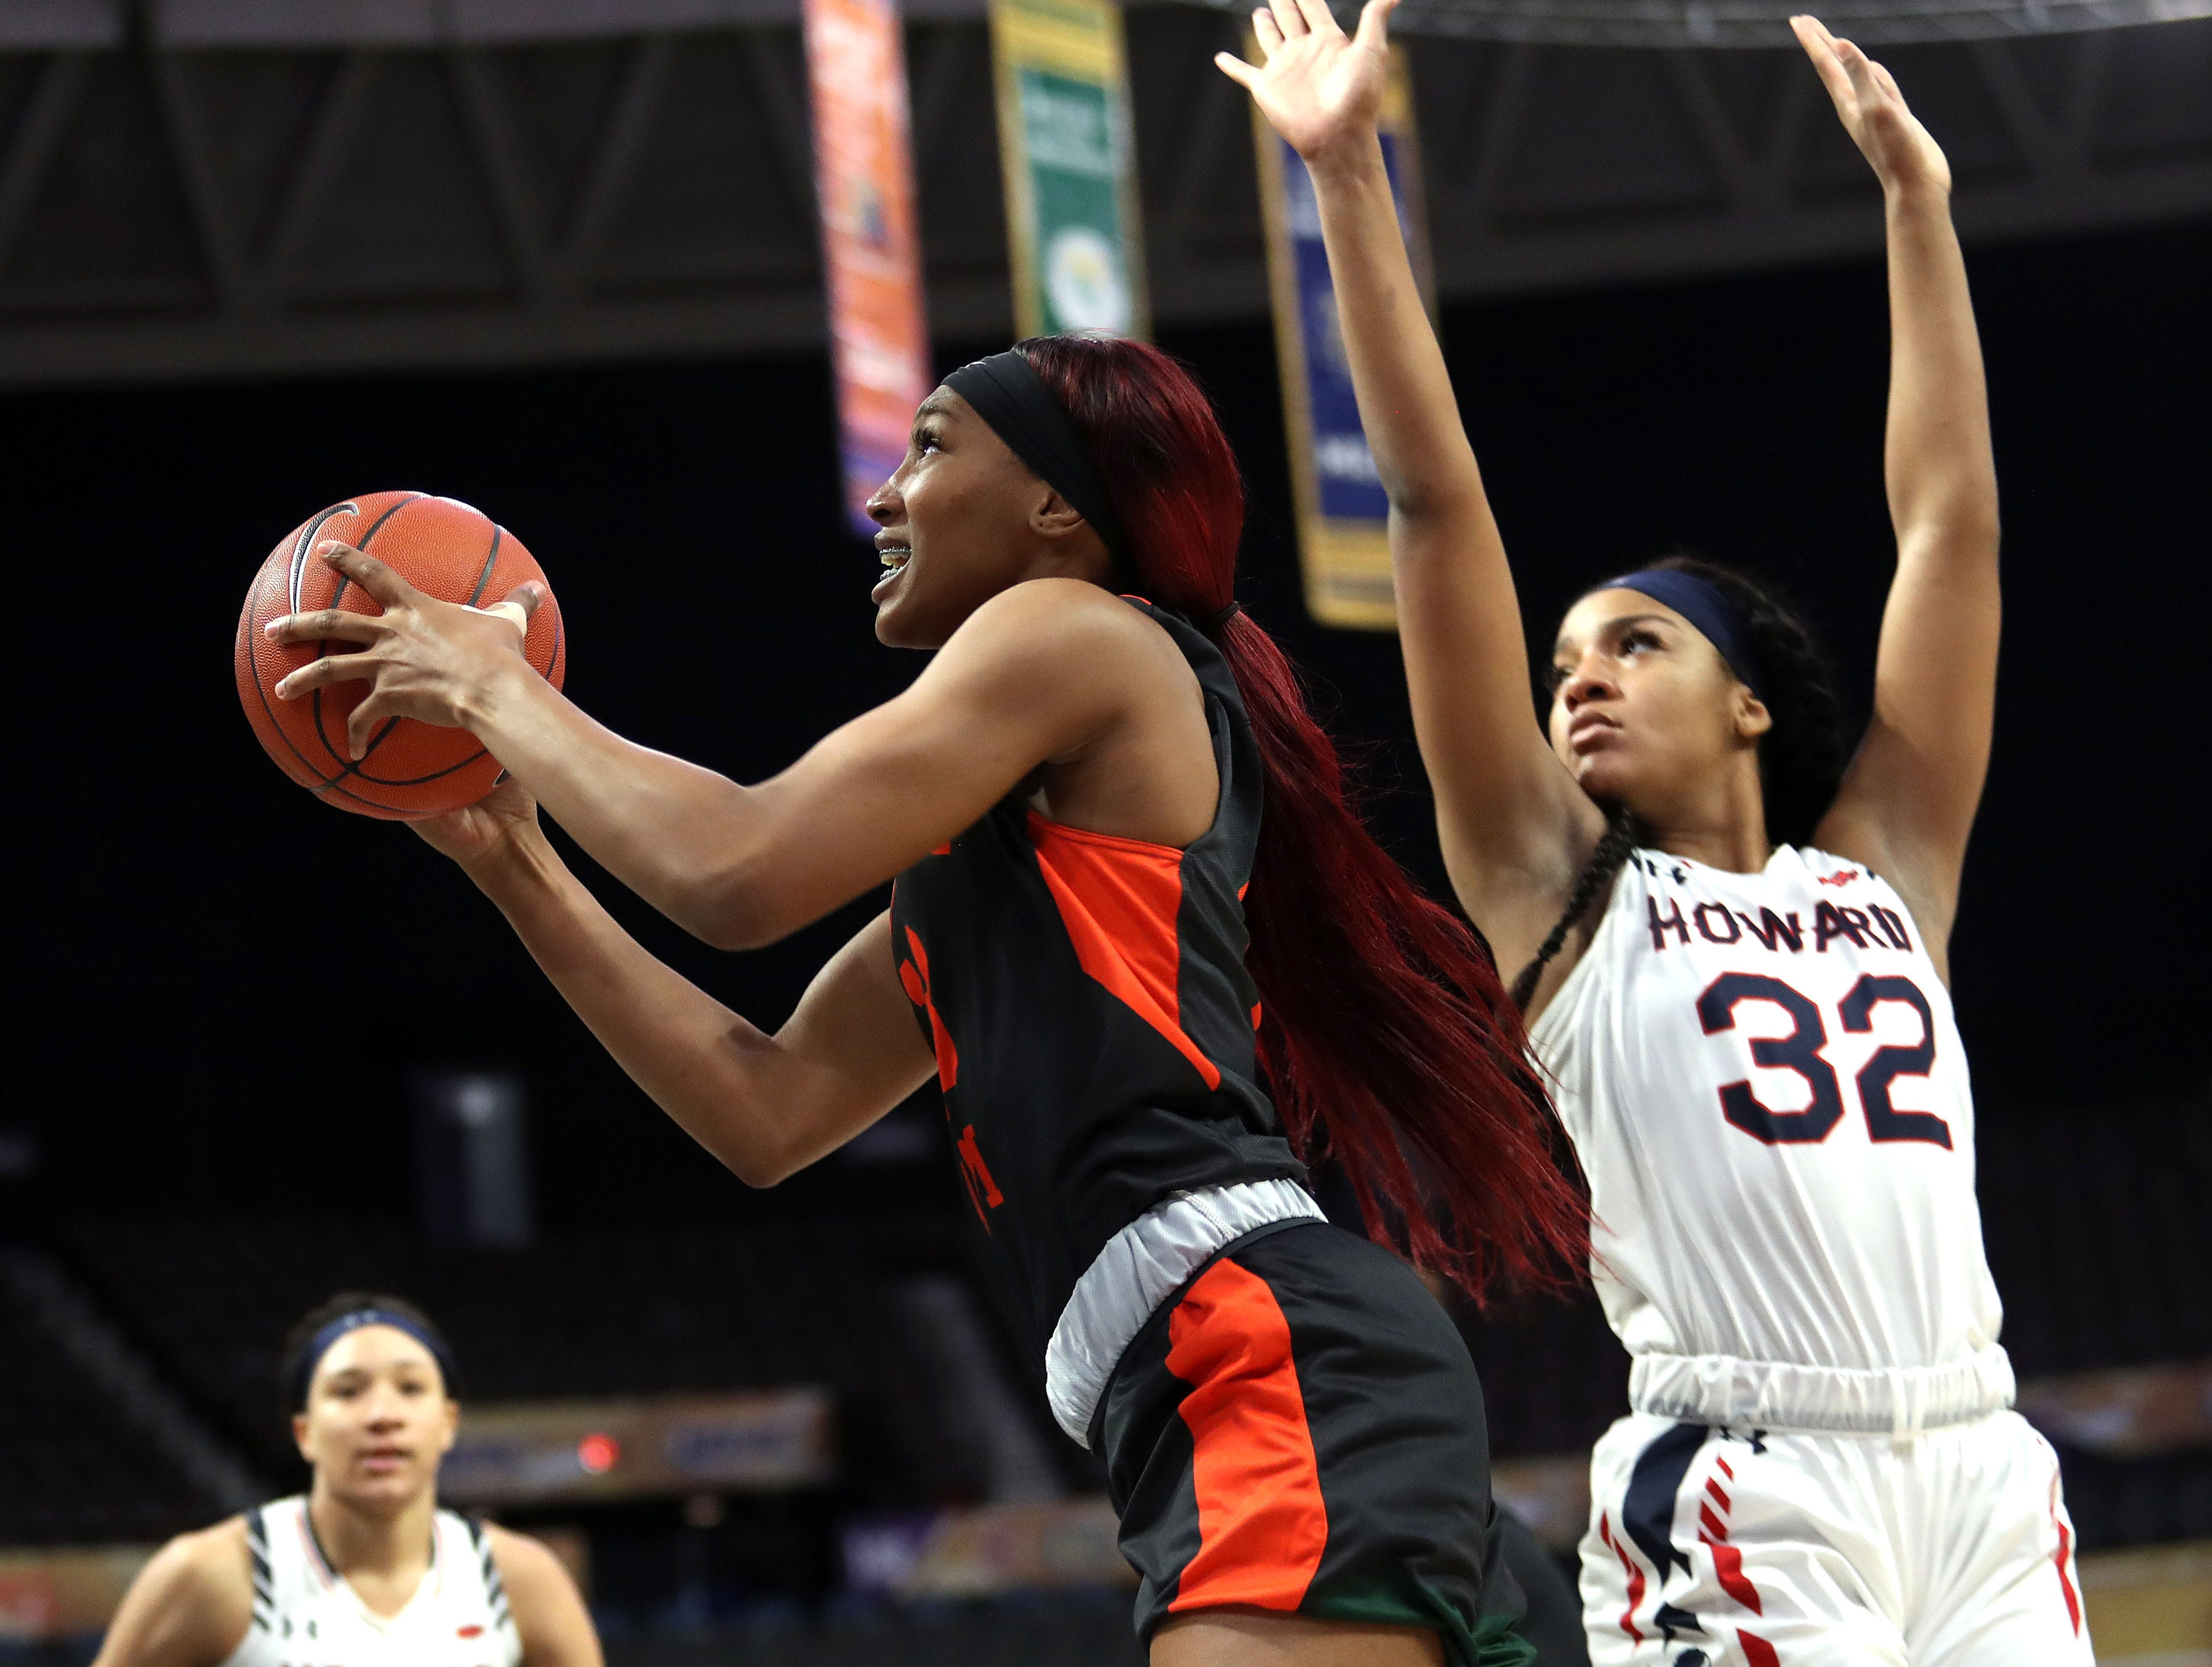 FAMU junior forward Dy'Manee Royal pulls up for a jumper over Krislyn Marsh (32) in the first round of the MEAC tournament on Monday, March 11, 2019.